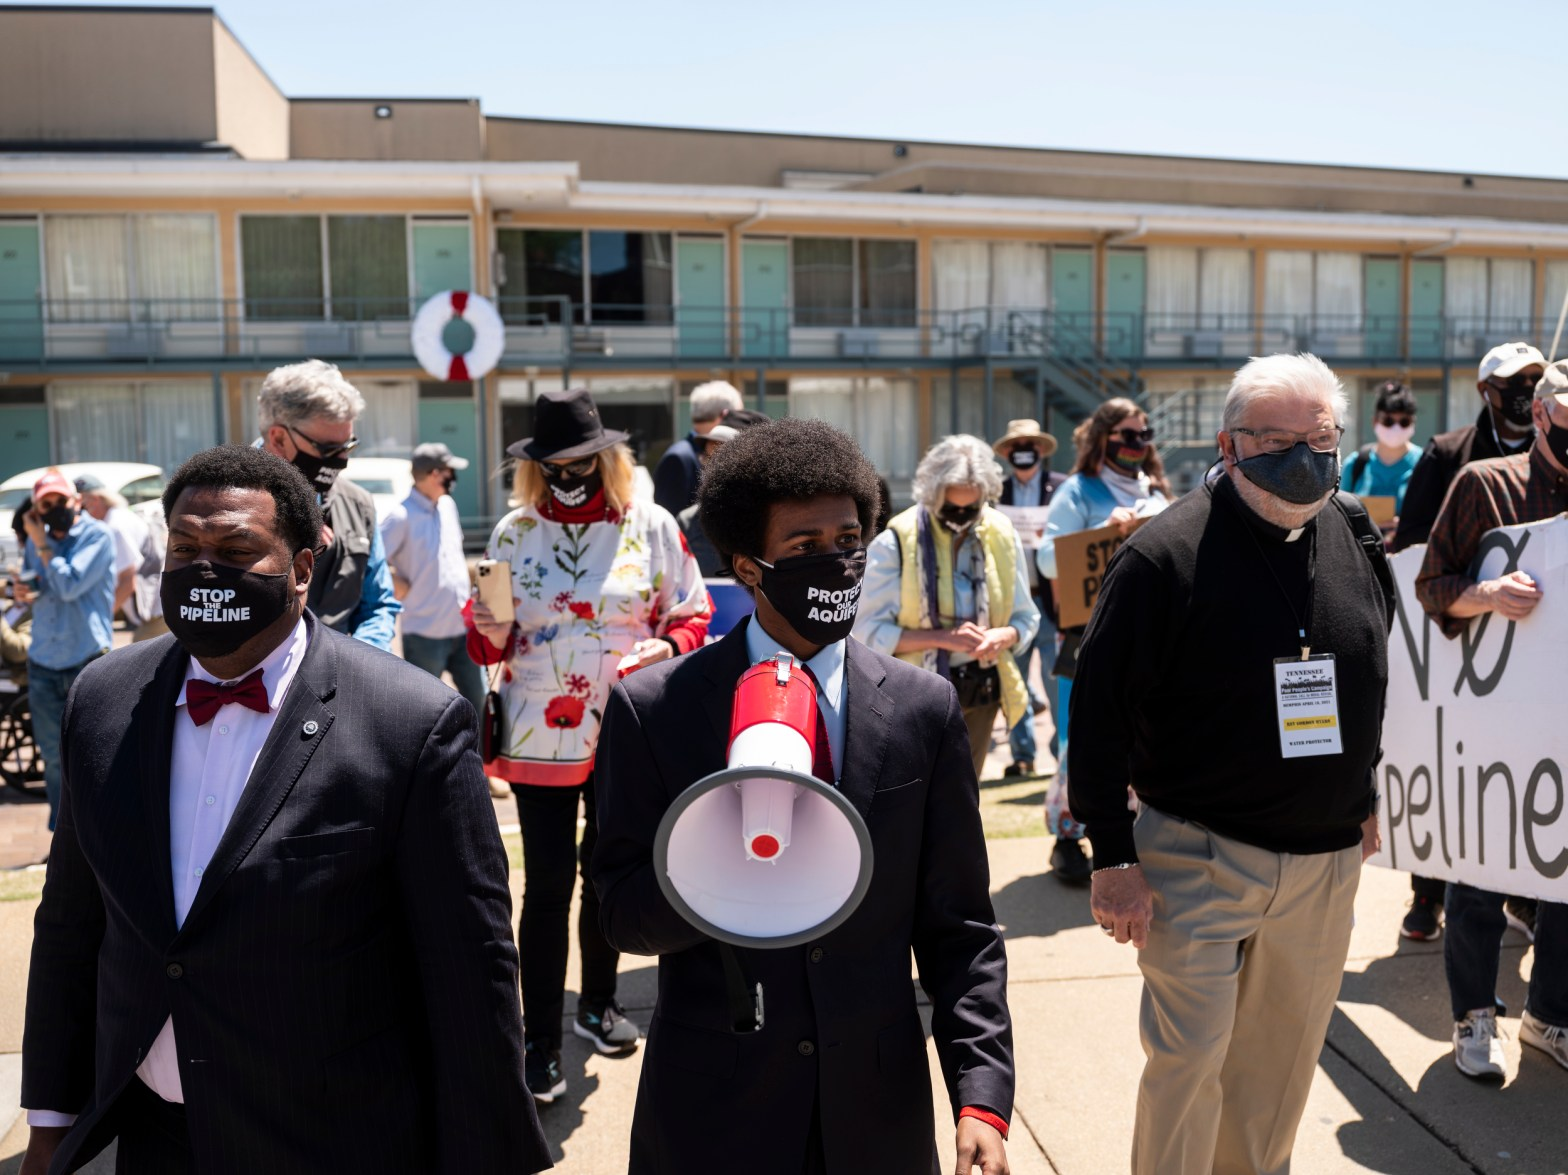 Justin J. Pearson, center, a co-founder of Memphis Community Against the Pipeline, led a march from the National Civil Rights Museum to Memphis City Hall Monday in support of an ordinance before the City Council that would regulate hazardous material underground transportation or storage, including by pipelines. (Photo: Brad Vest for MLK50)